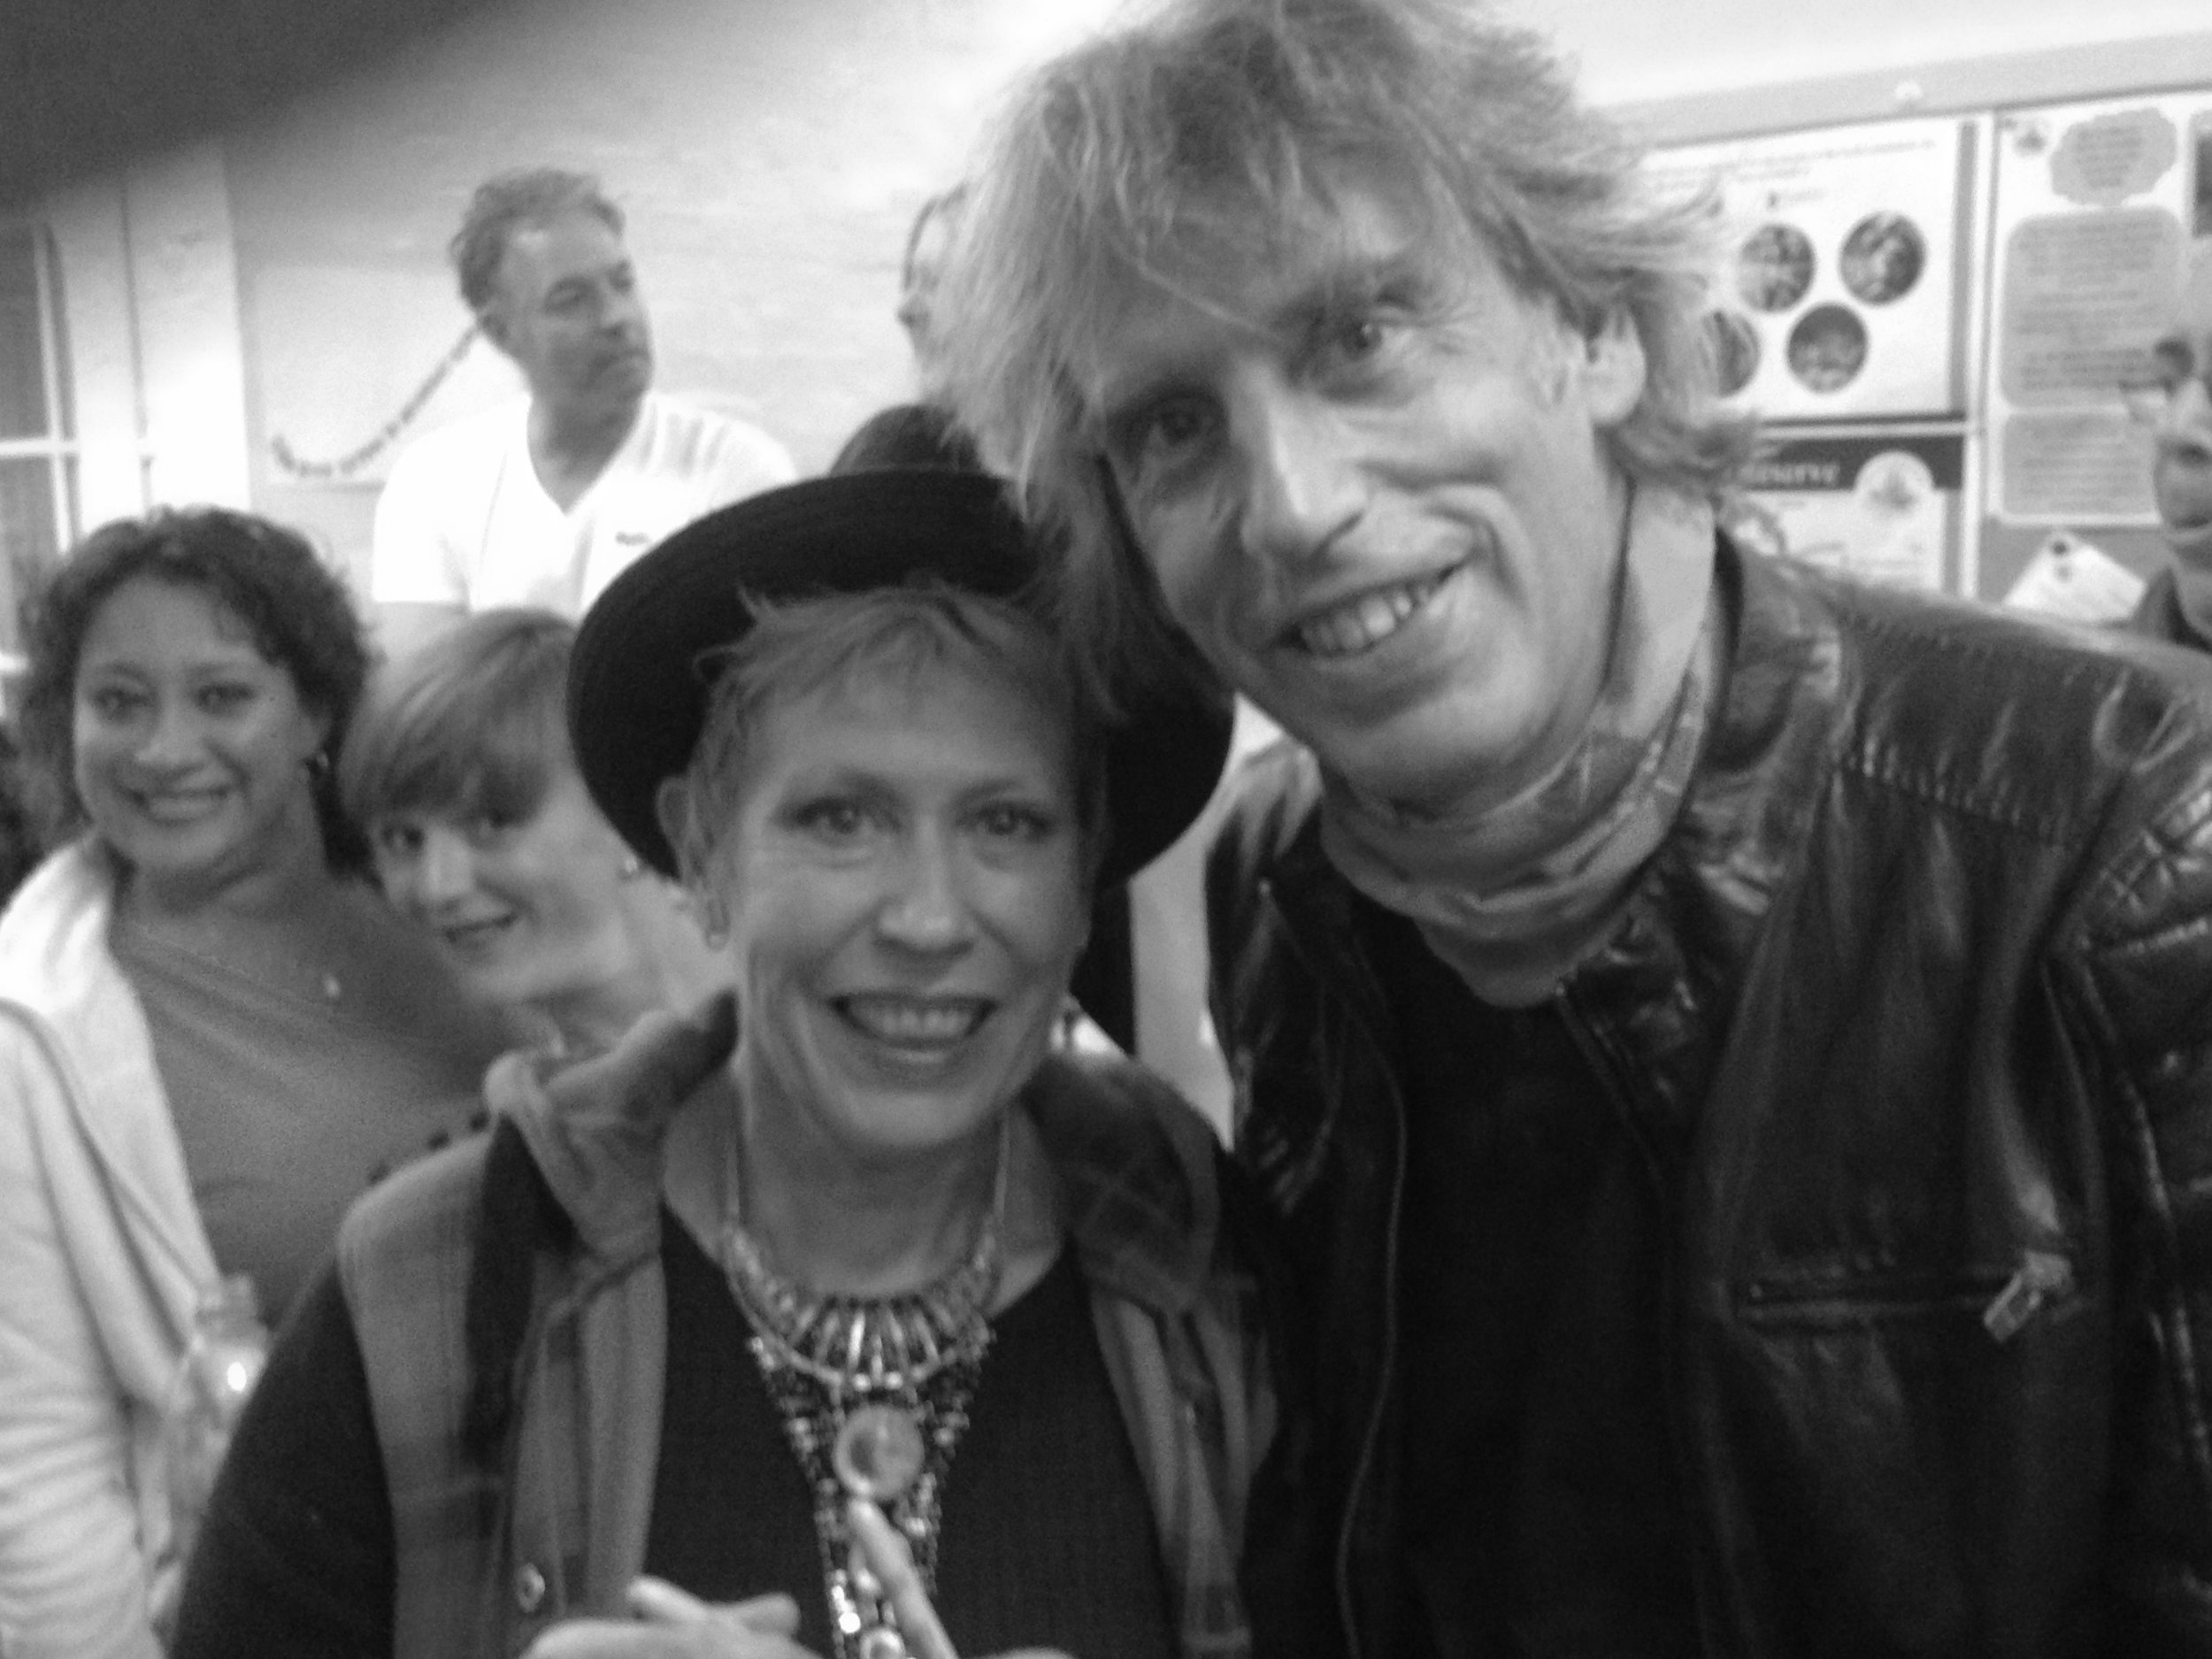 Hazel O'Connor & Me at The Phoenix Theatre Bordon 10-10-15 B&W.jpg